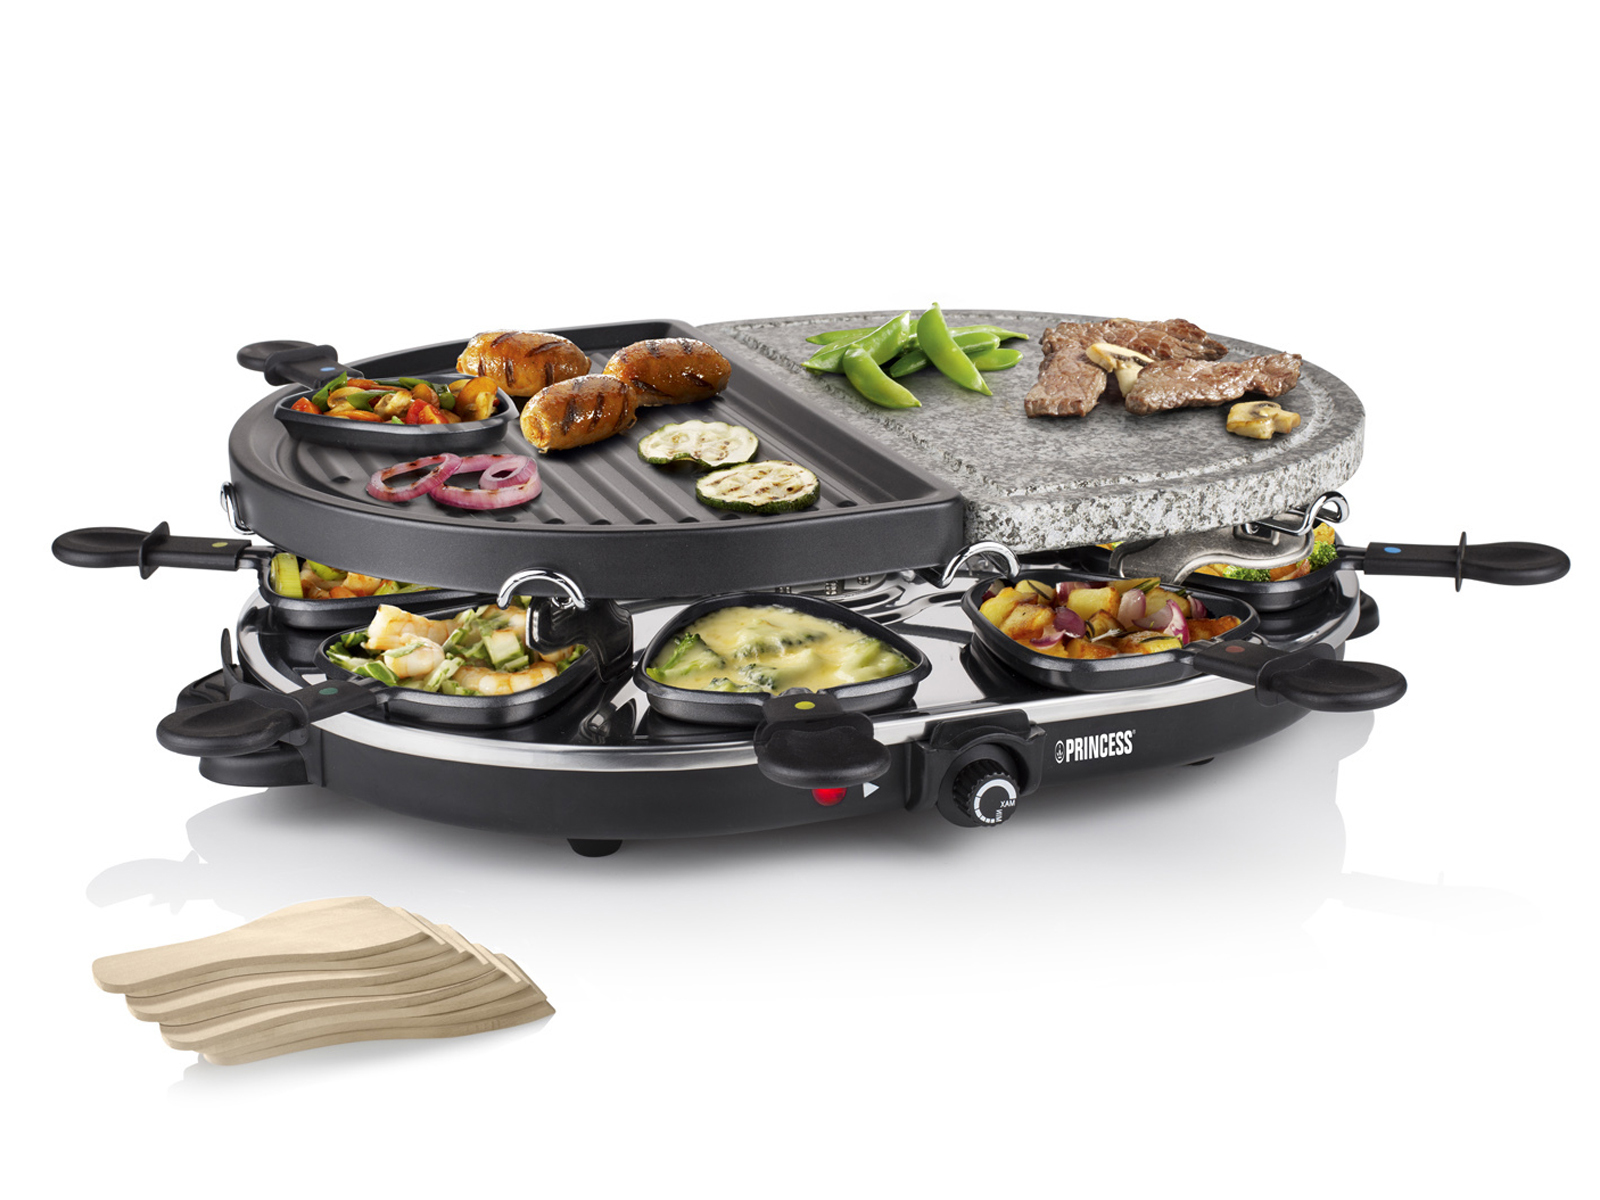 raclette grill 8 personen bratplatte steinplatte 1200w antihaftbeschichtet ebay. Black Bedroom Furniture Sets. Home Design Ideas